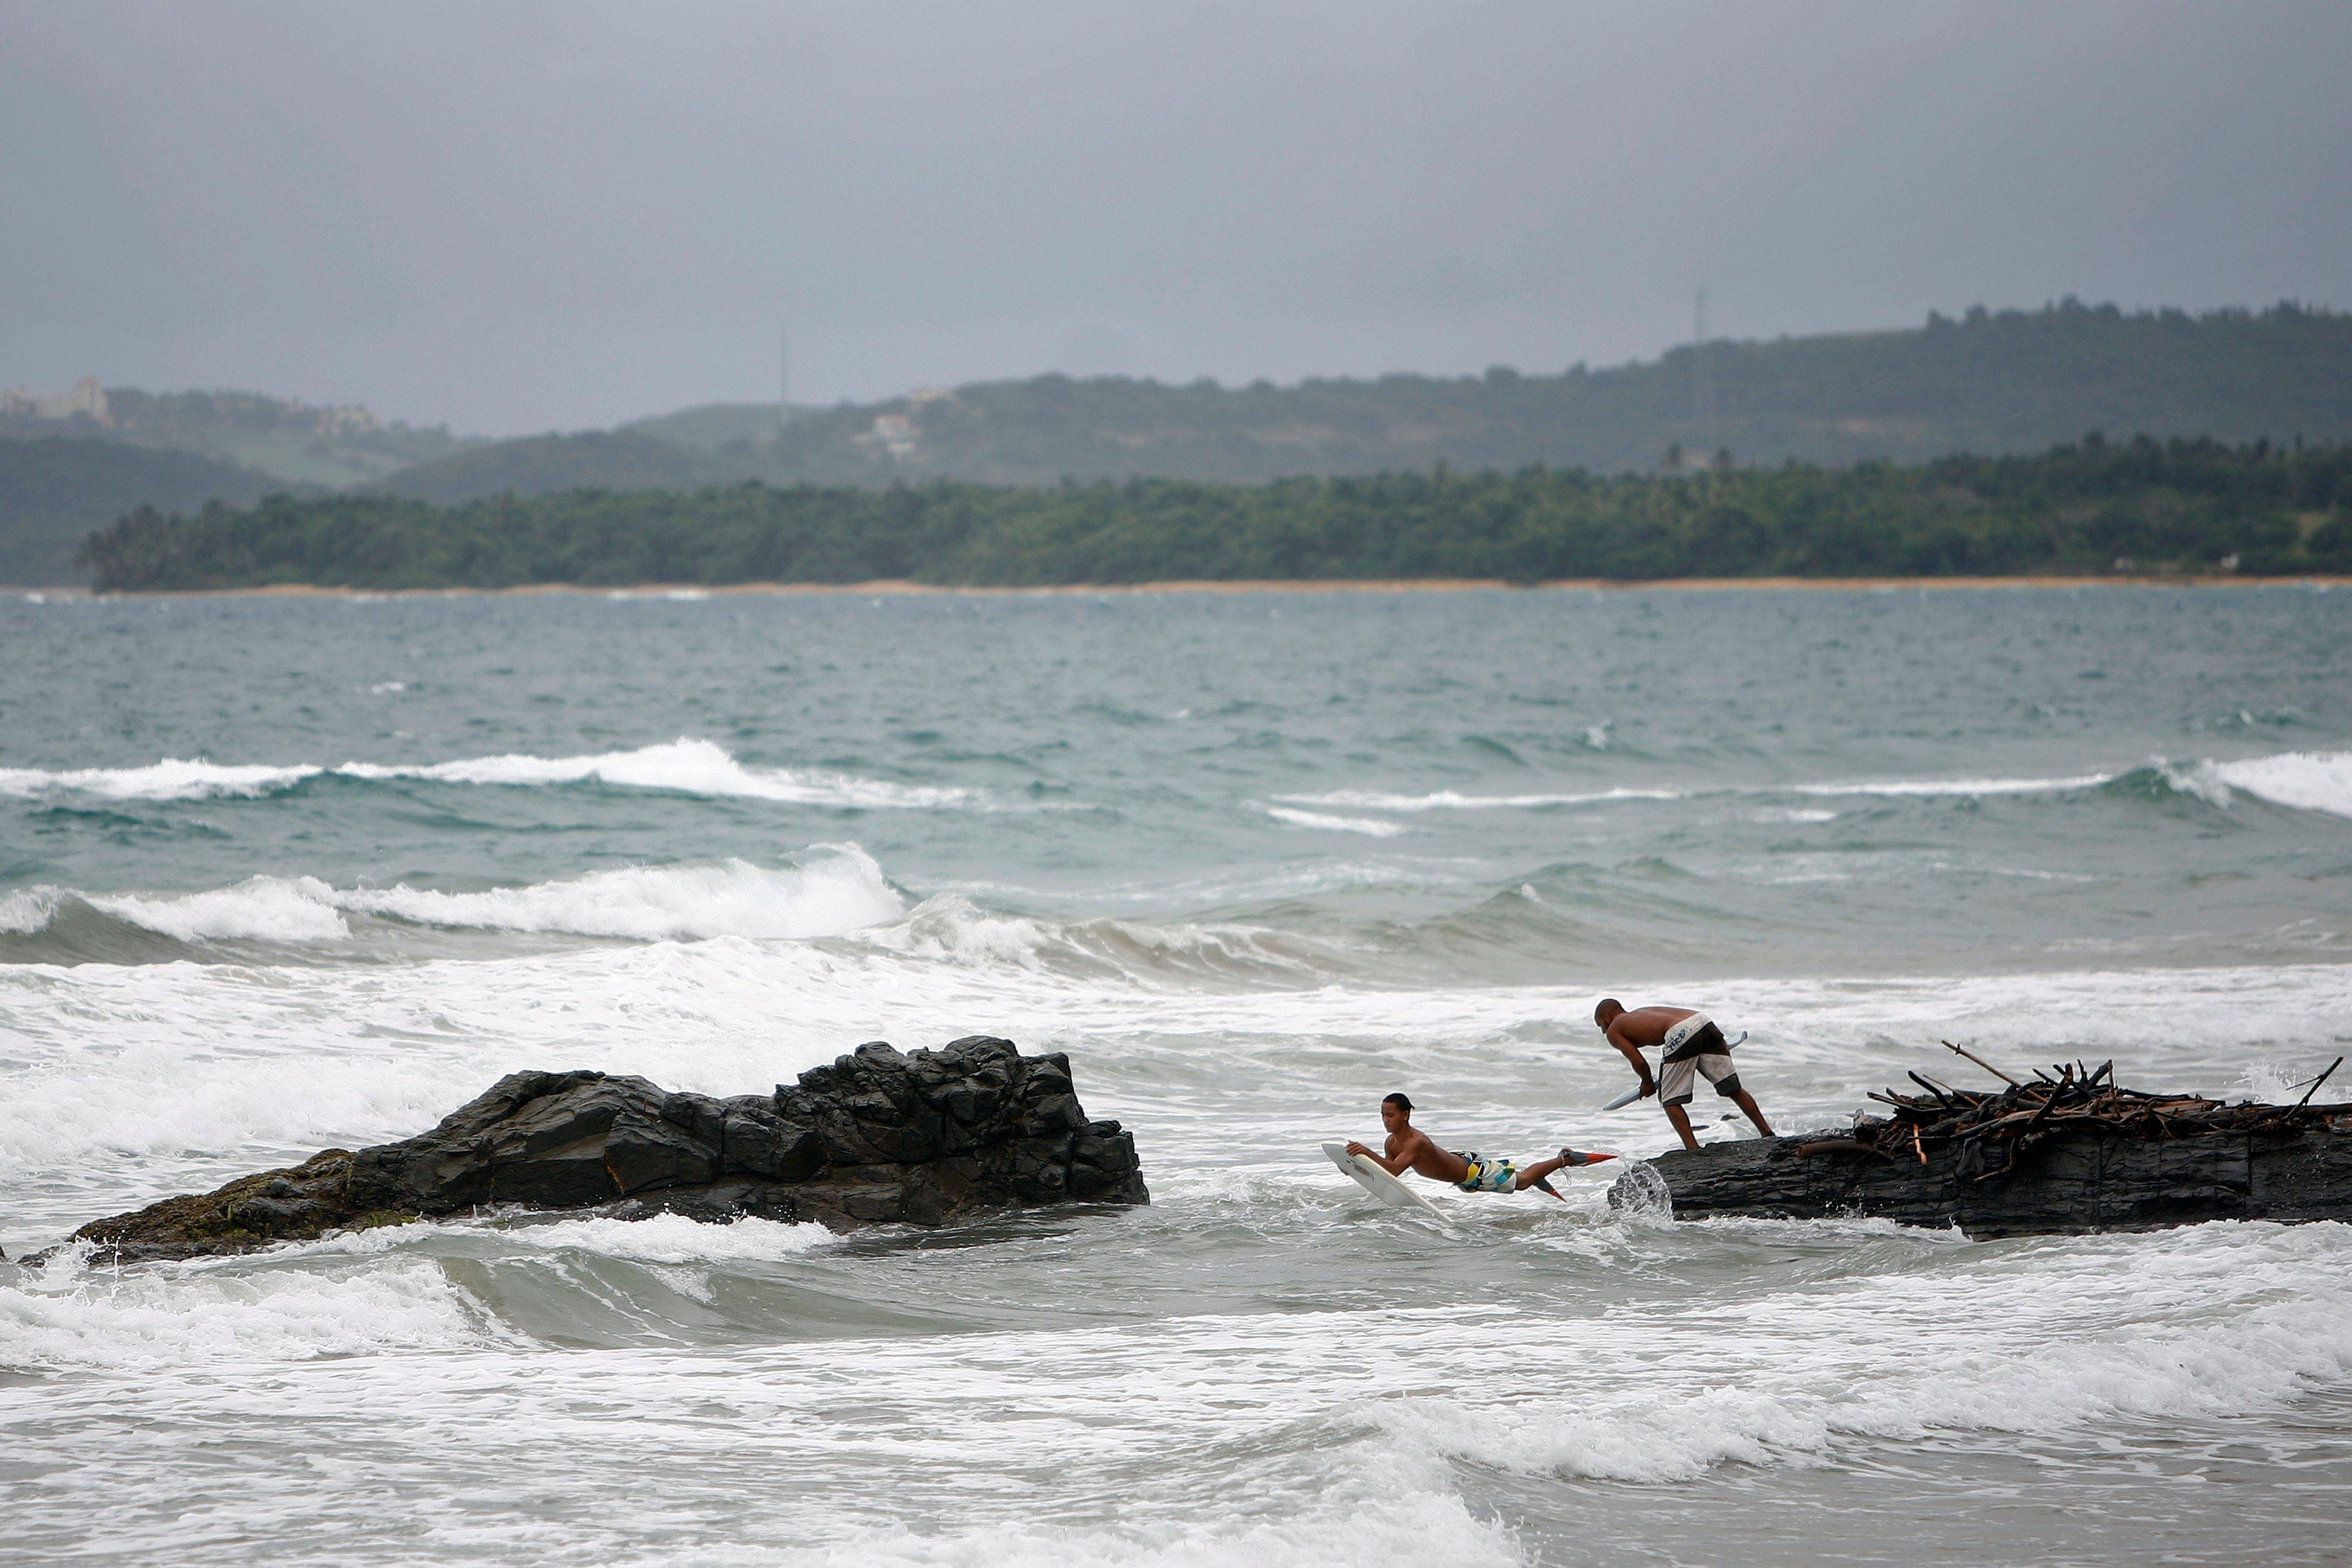 Surfers jump off the rocks into the ocean as Tropical Storm Irene approaches the island Sunday in Luquillo, Puerto Rico. The storm, packing winds of about 50 mph and tracking westward at 20 mph, was expected to strengthen and pass near the U.S. island of Puerto Rico later Sunday or early Monday.